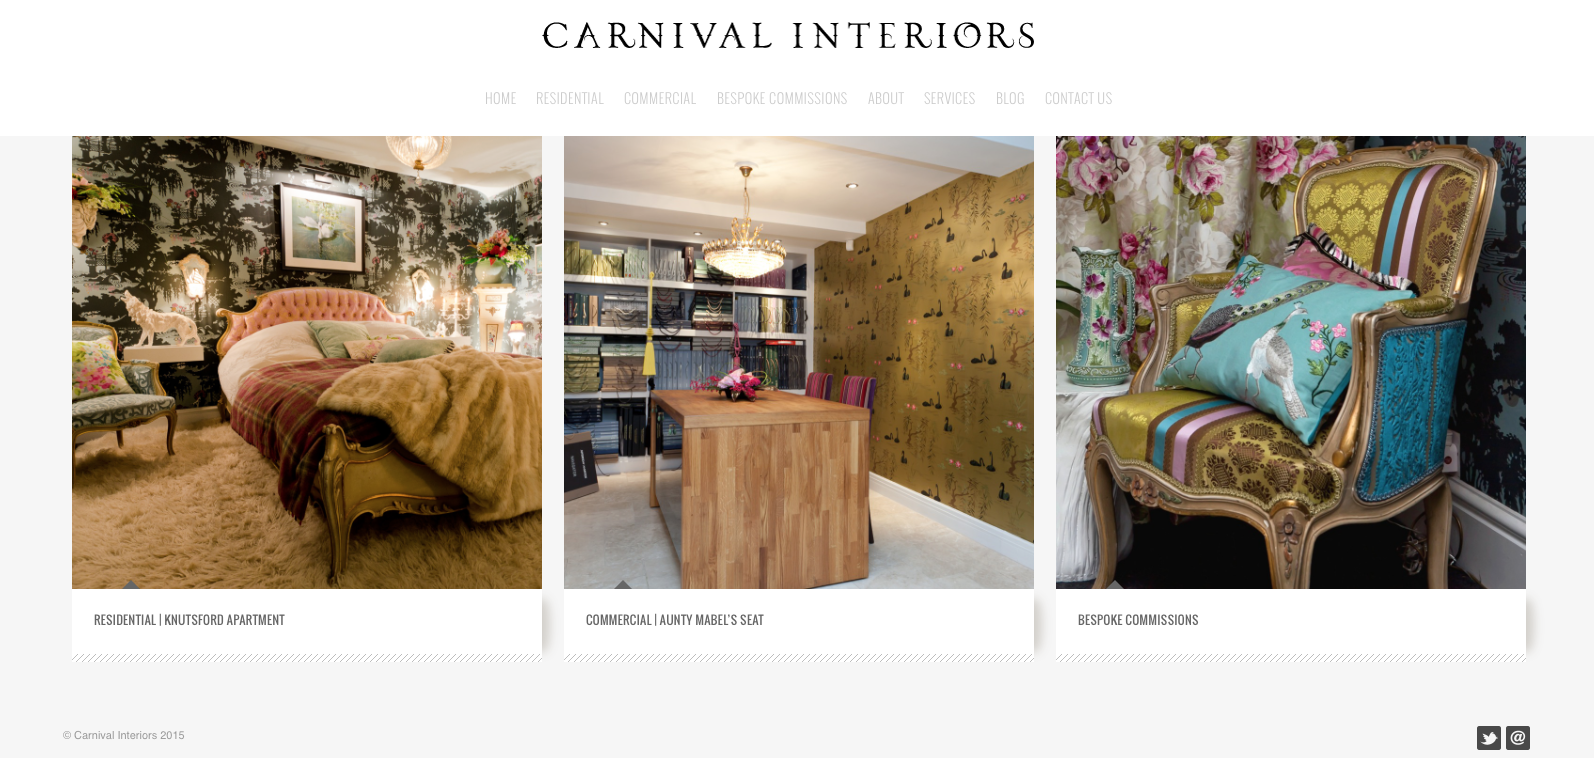 Carnival Interiors, Knutsford, website designed by Damsel in Design